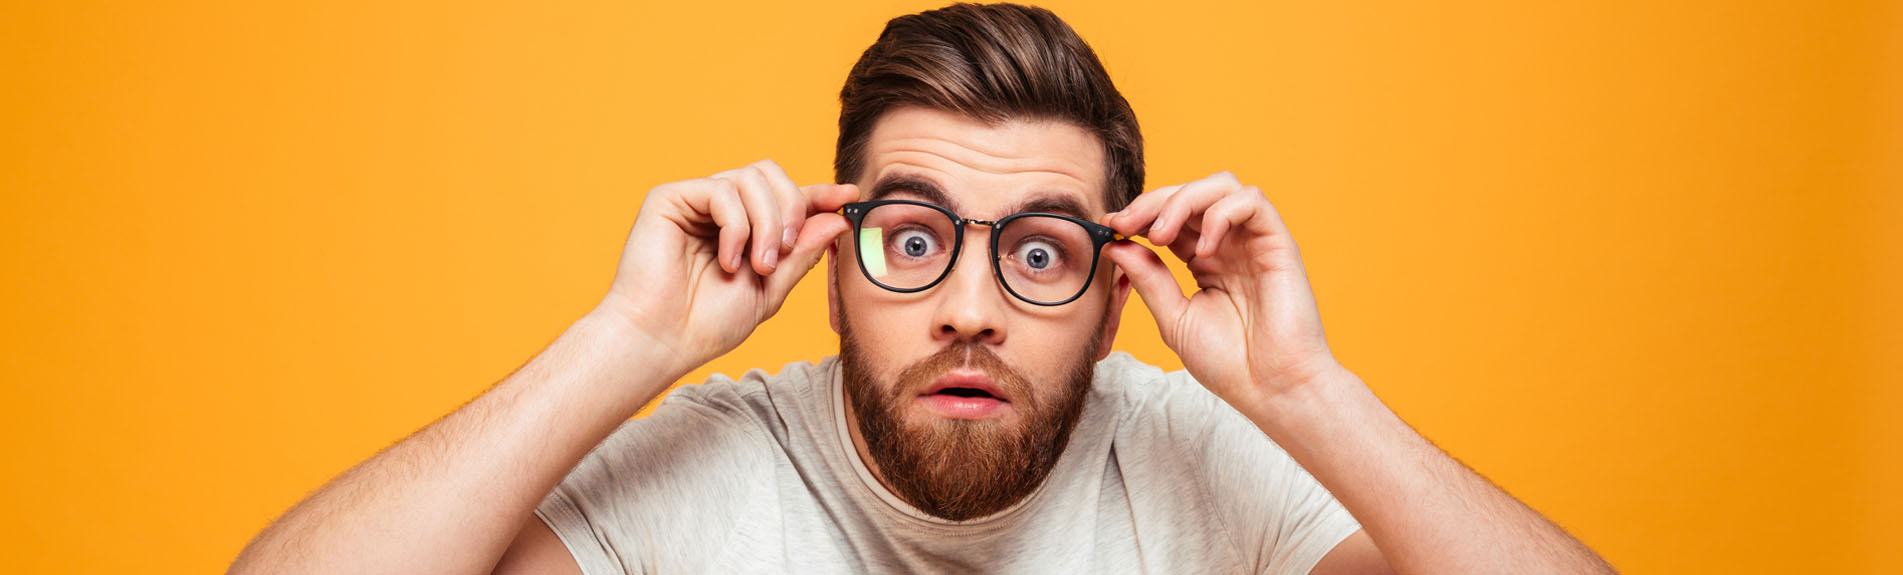 Choosing lenses for your eyeglasses